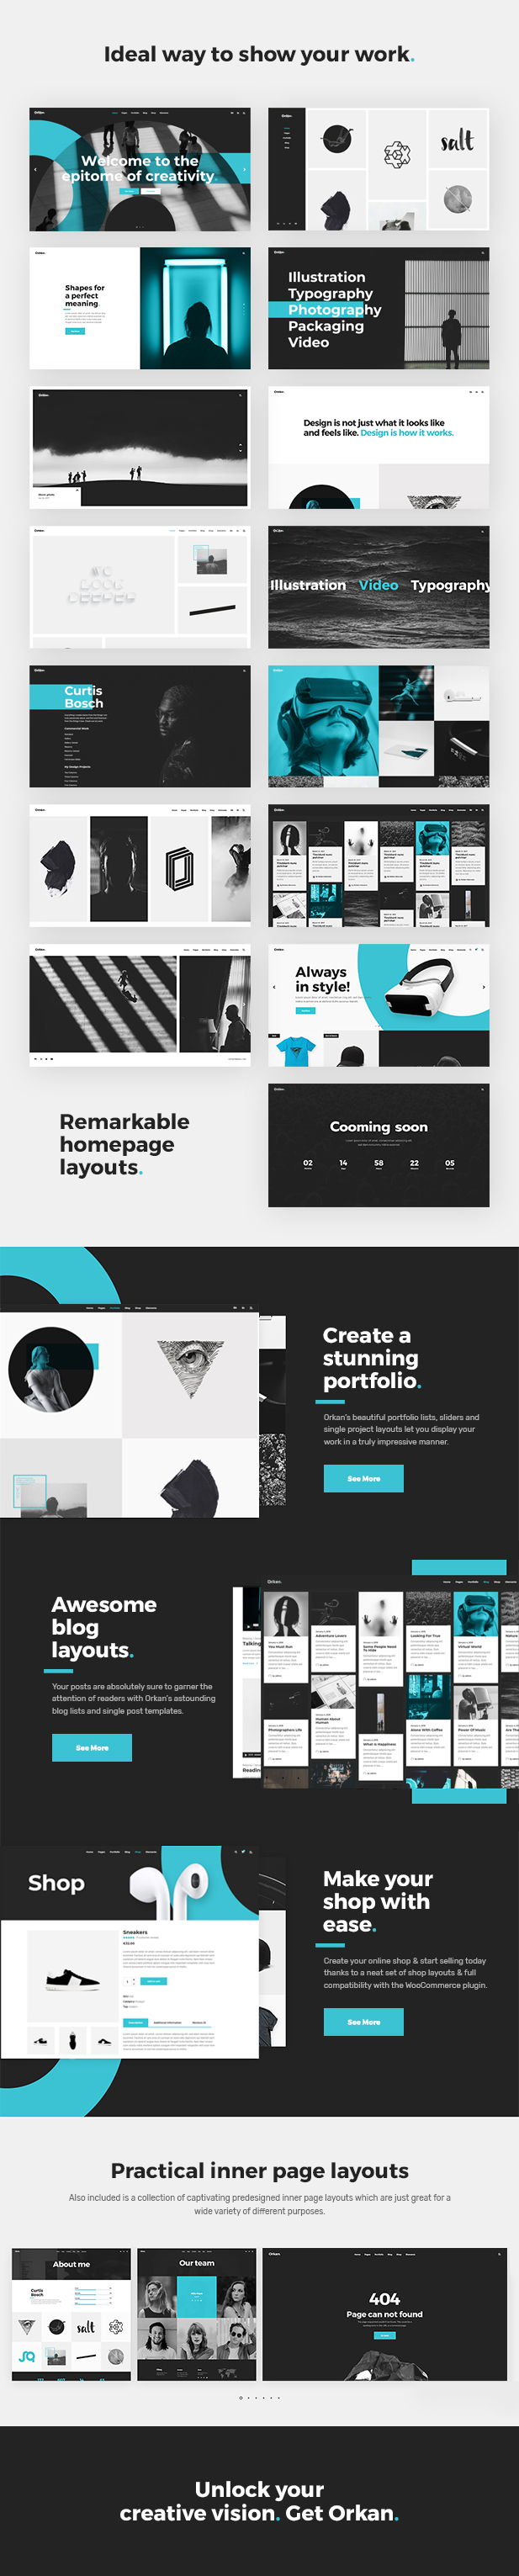 WordPress theme Orkan - A Portfolio Theme Made for Designers, Artists and Agencies (Portfolio)